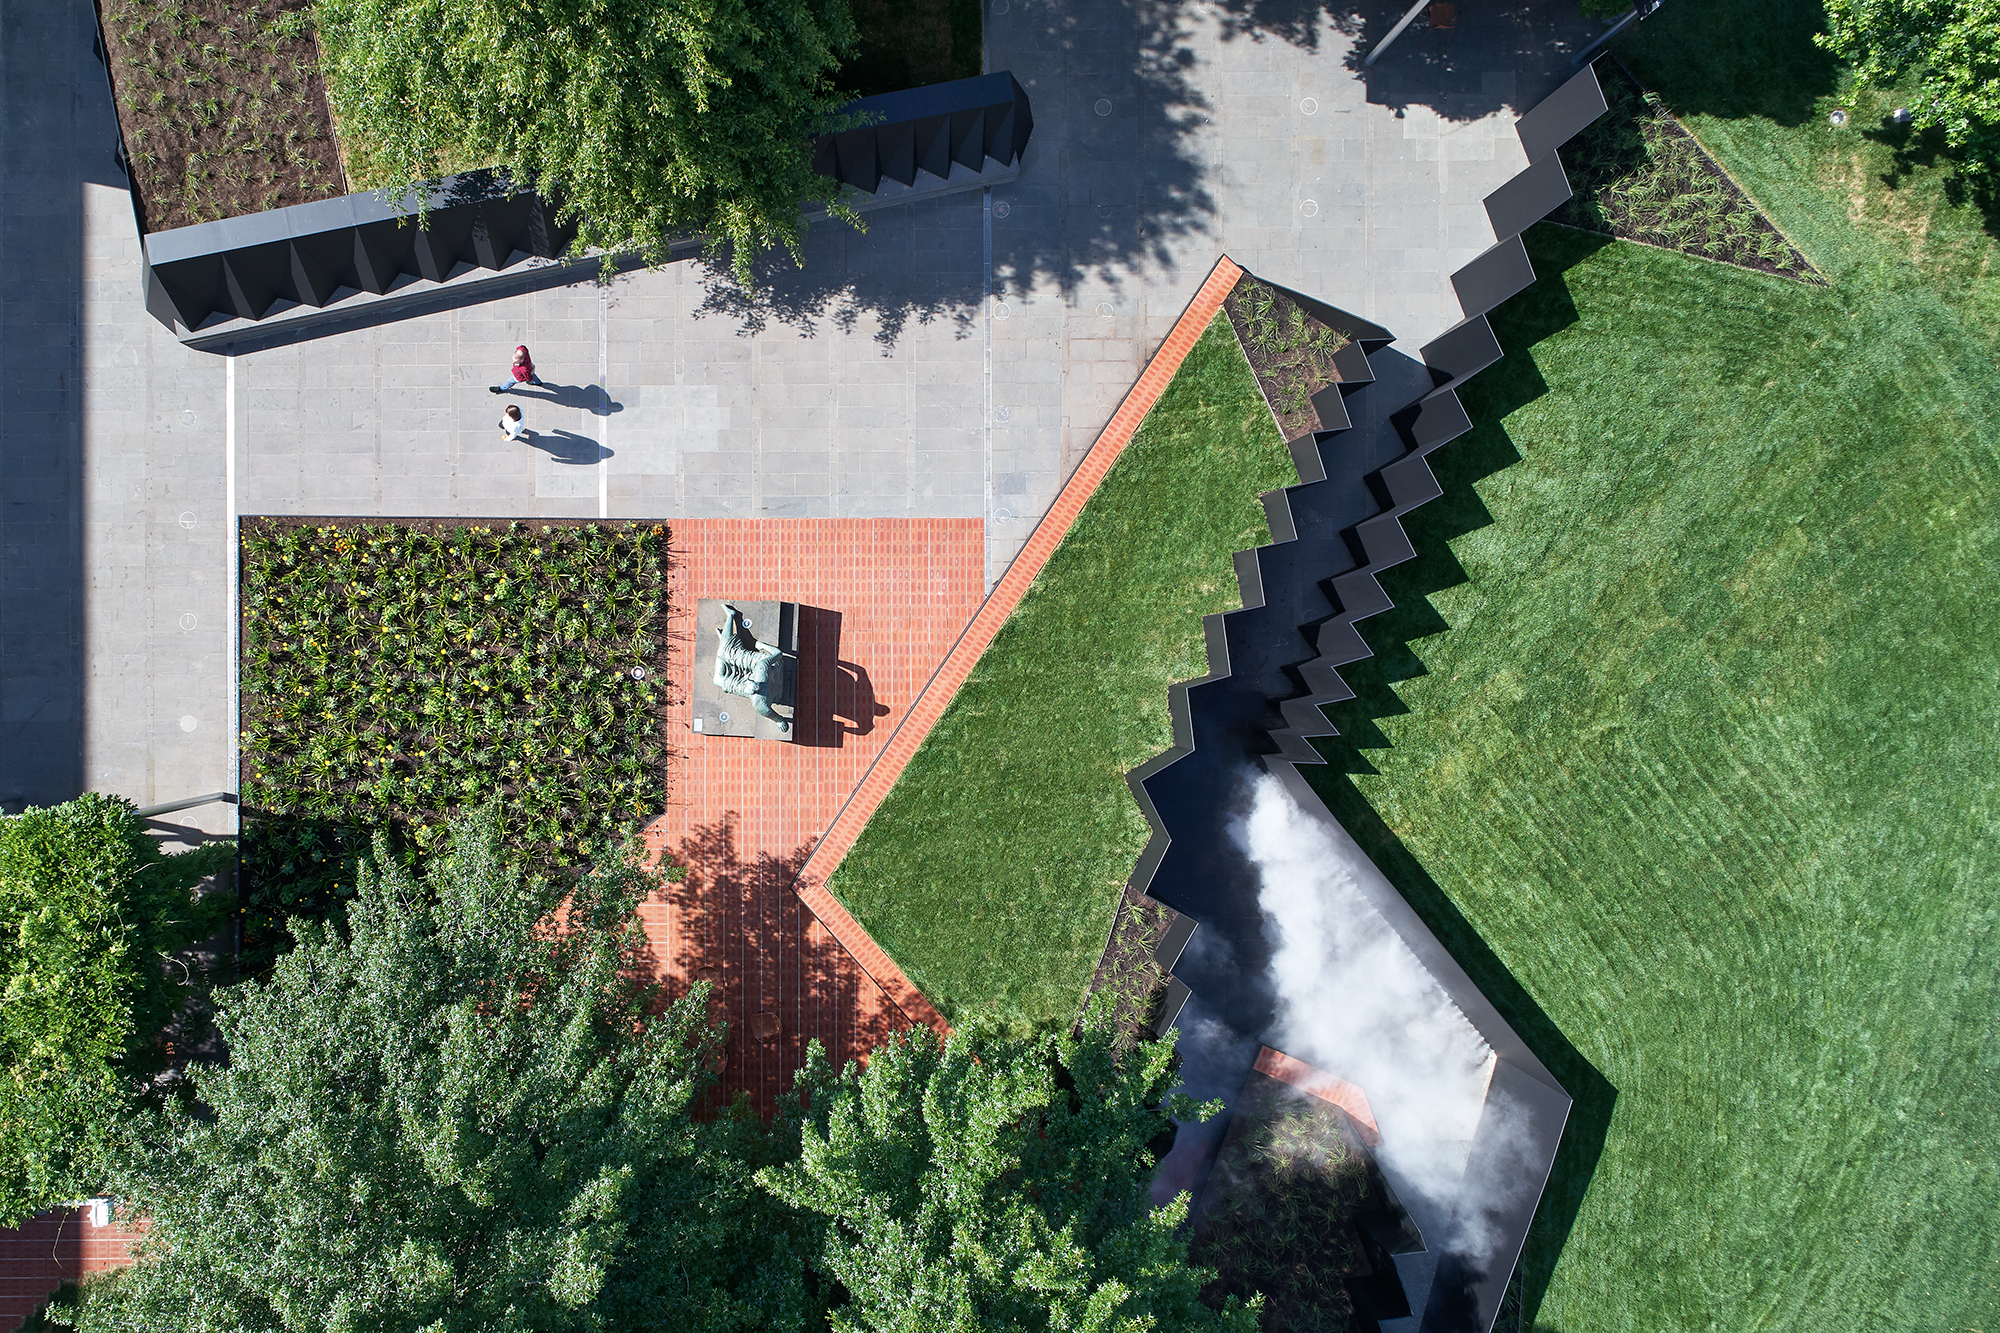 Doubleground transforms the NGV's Grollo Equiset Garden with a site-specific work of temporary architecture by literally raising sections of the landscape and creating chasm-like passageways for visitors to explore between the tilted embankments.